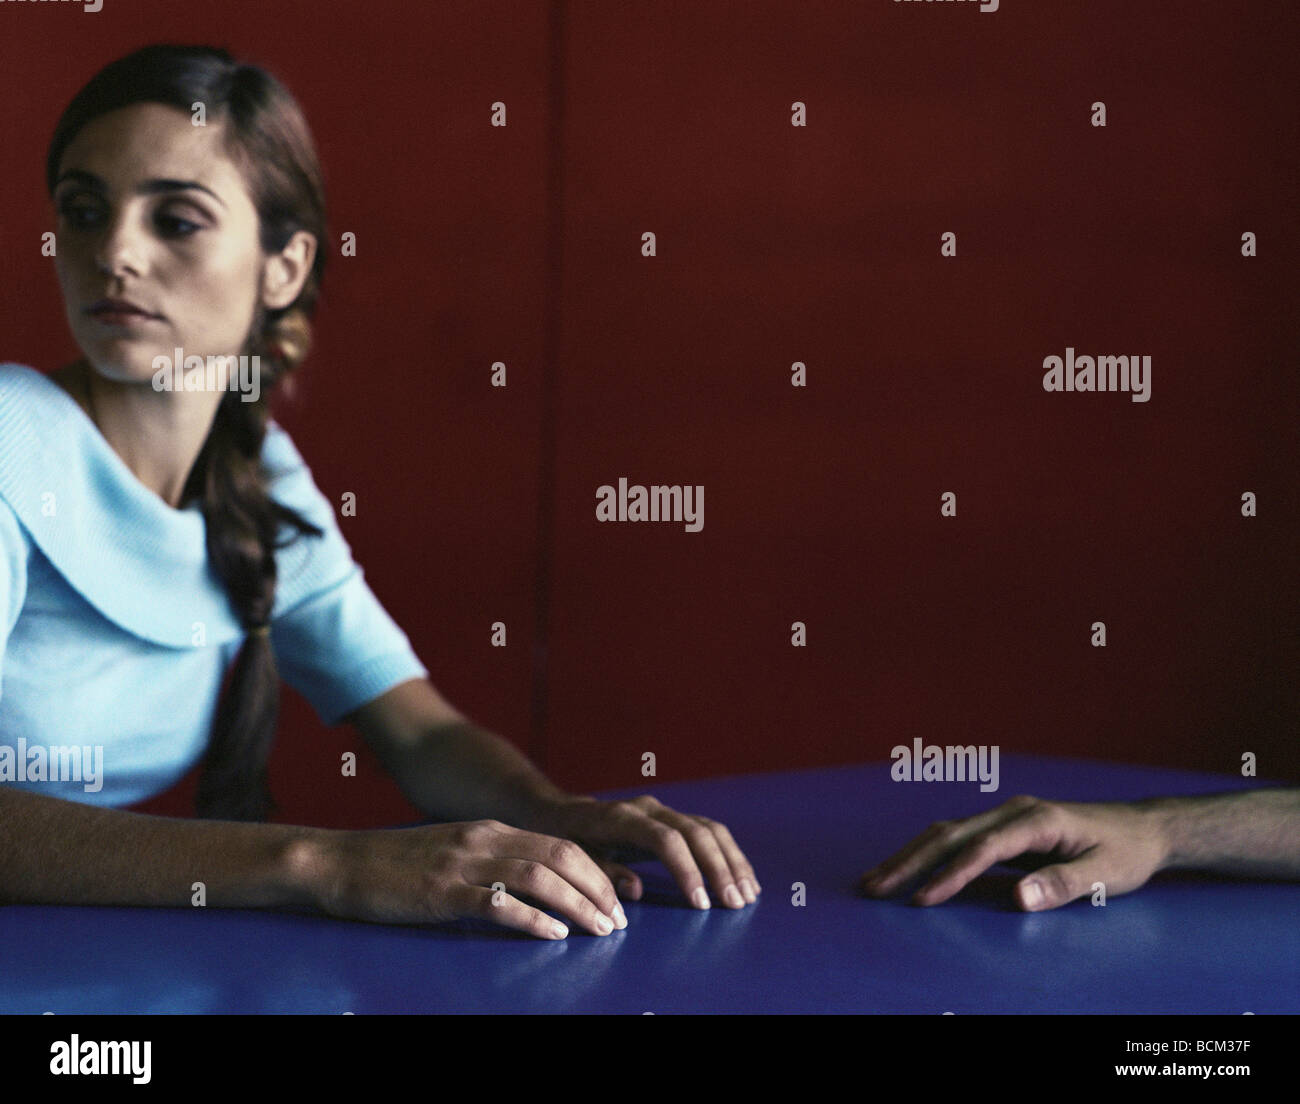 Woman and man sitting at table, woman looking away, cropped - Stock Image